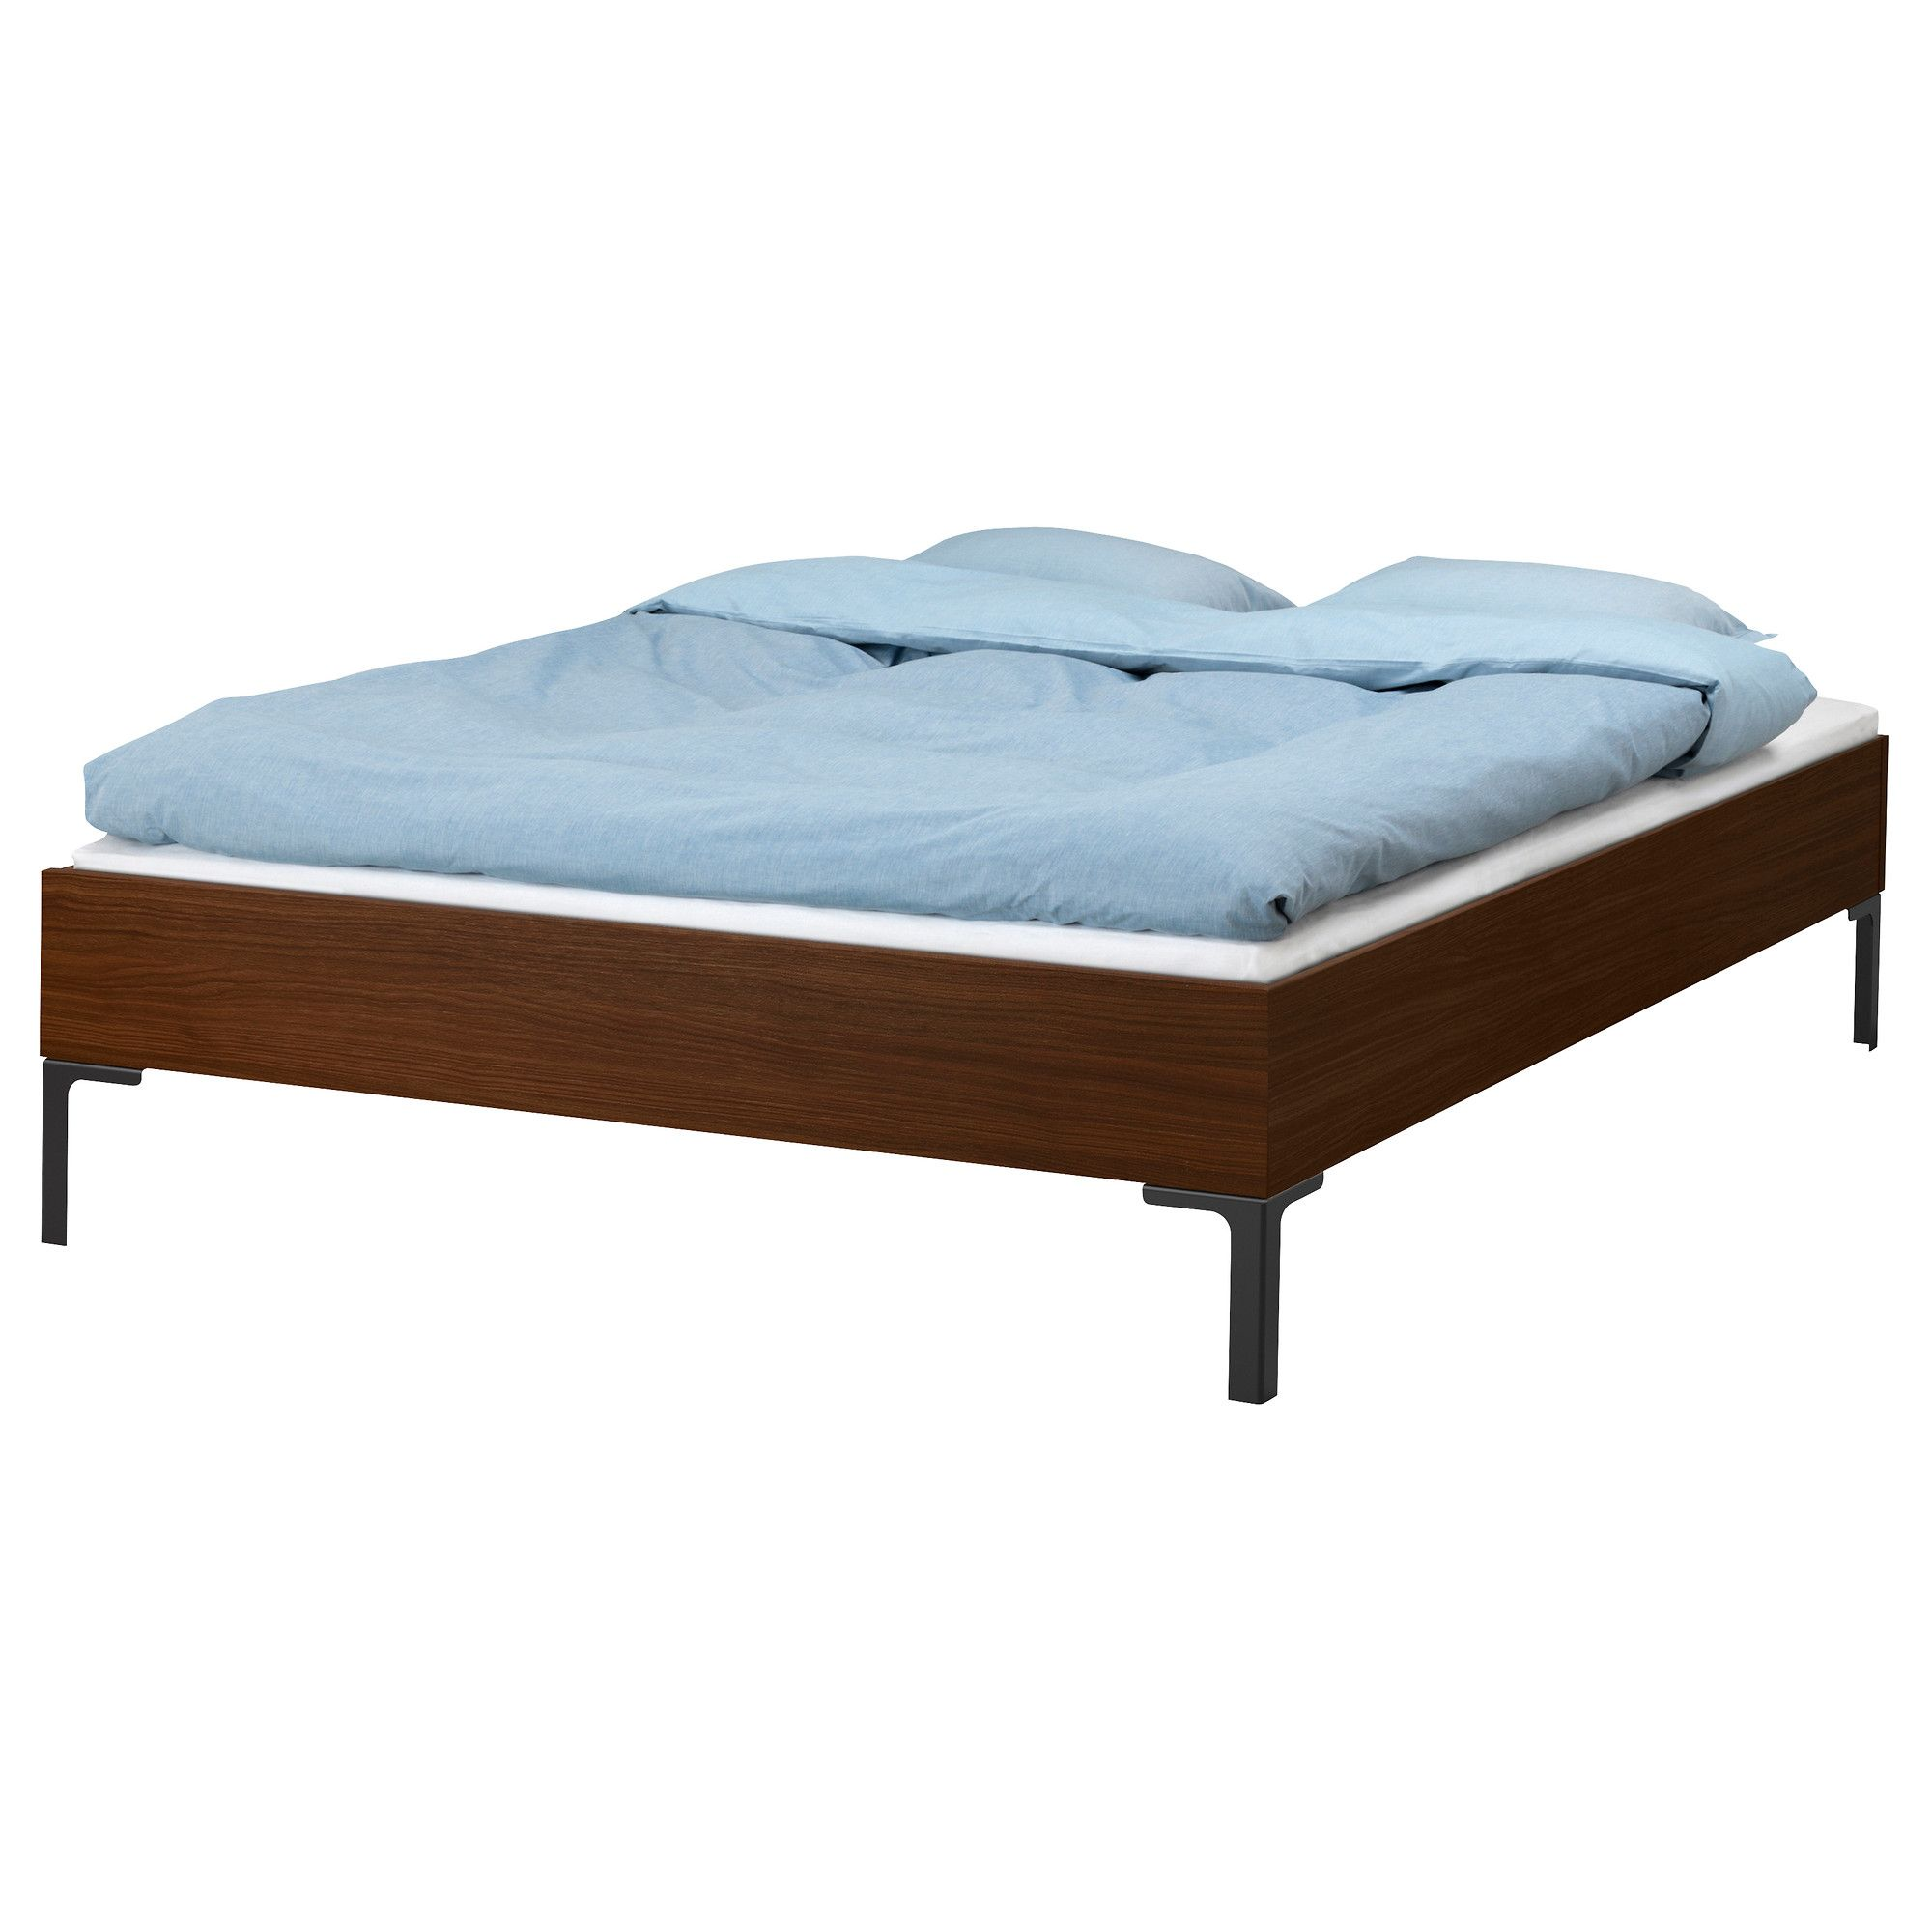 Ikea Us Furniture And Home Furnishings Ikea Bed Frames Bed